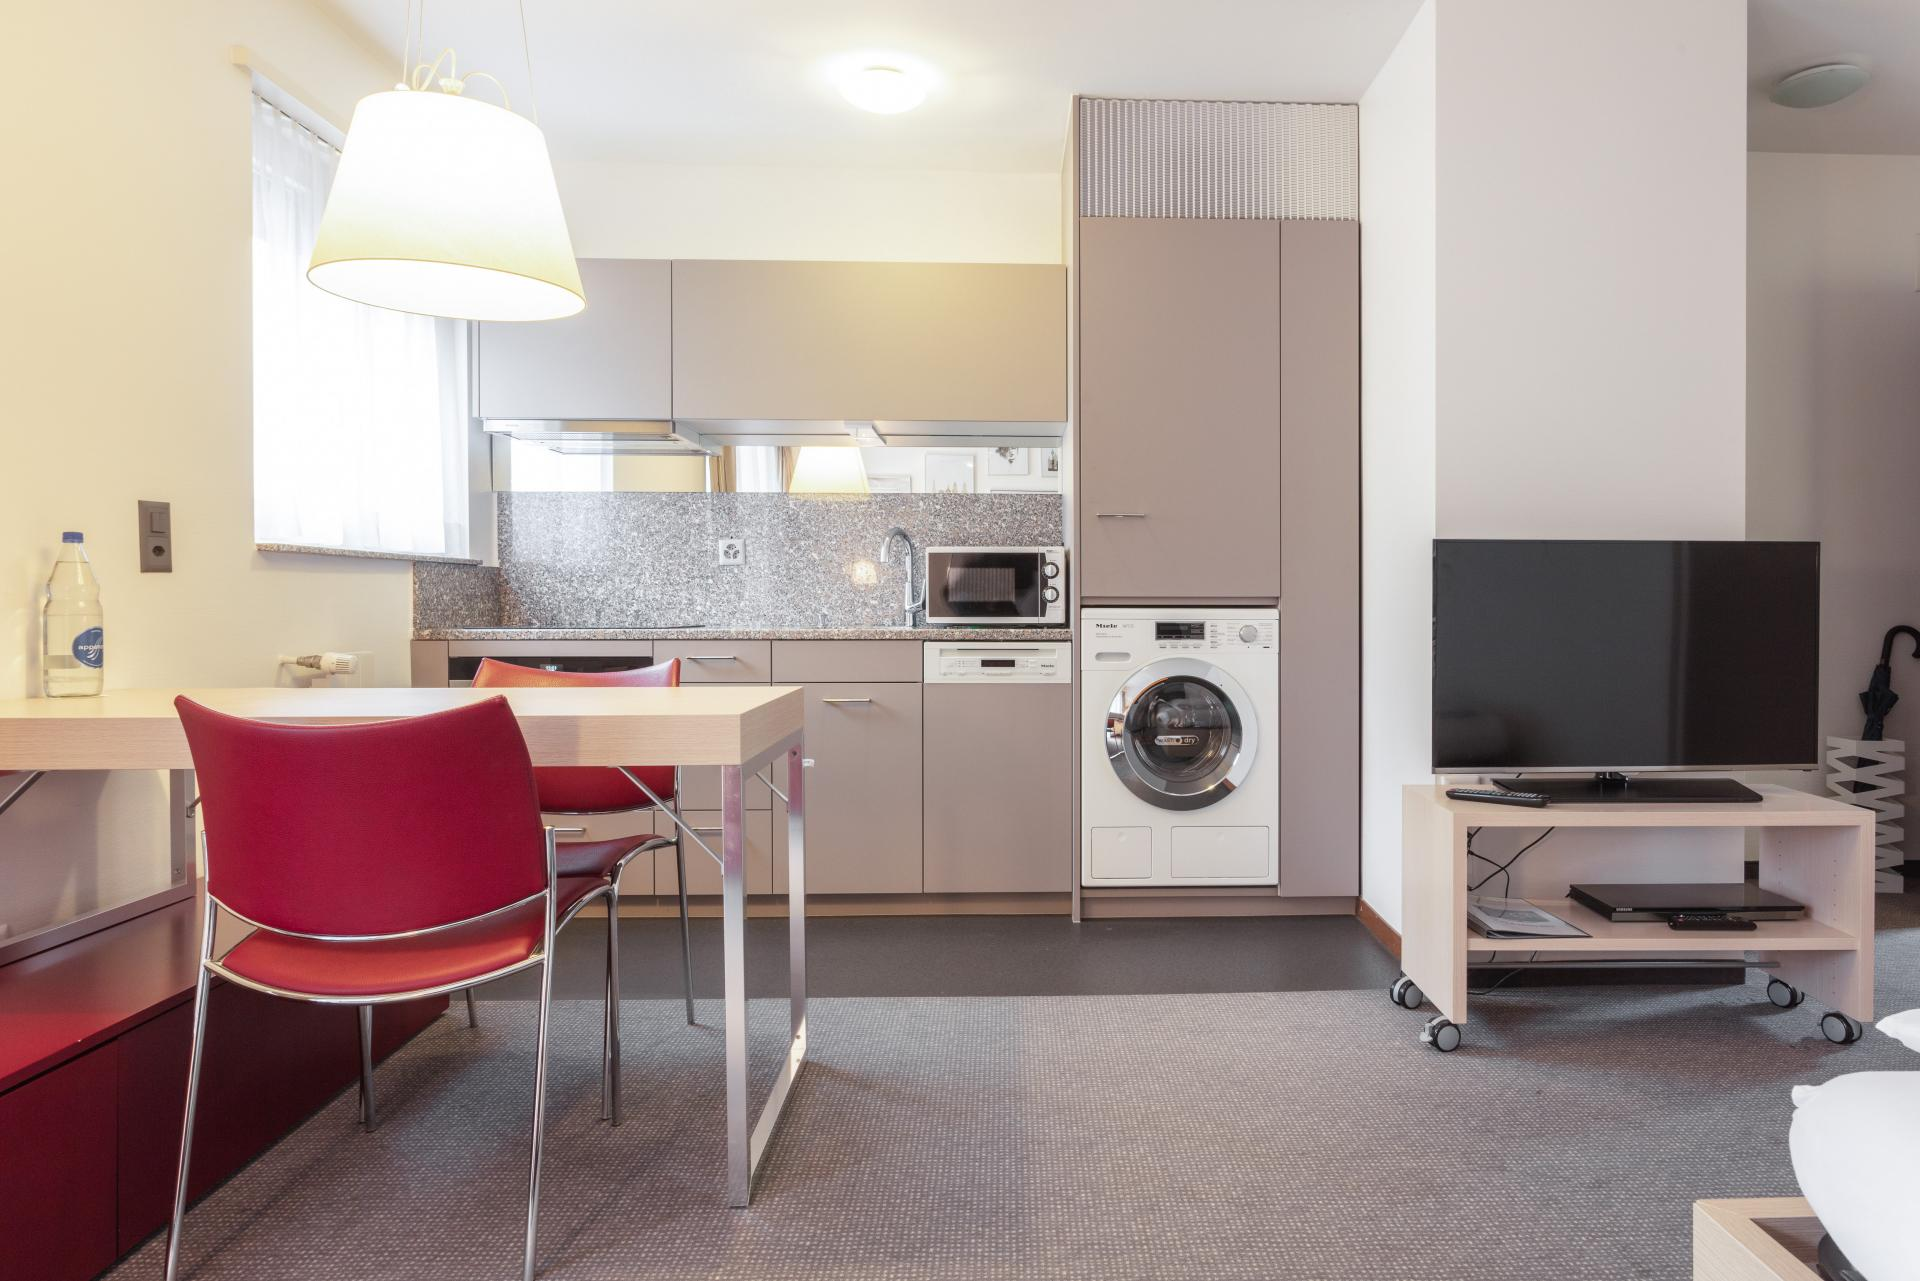 Laundry facilities at Florastrasse 26 Apartments